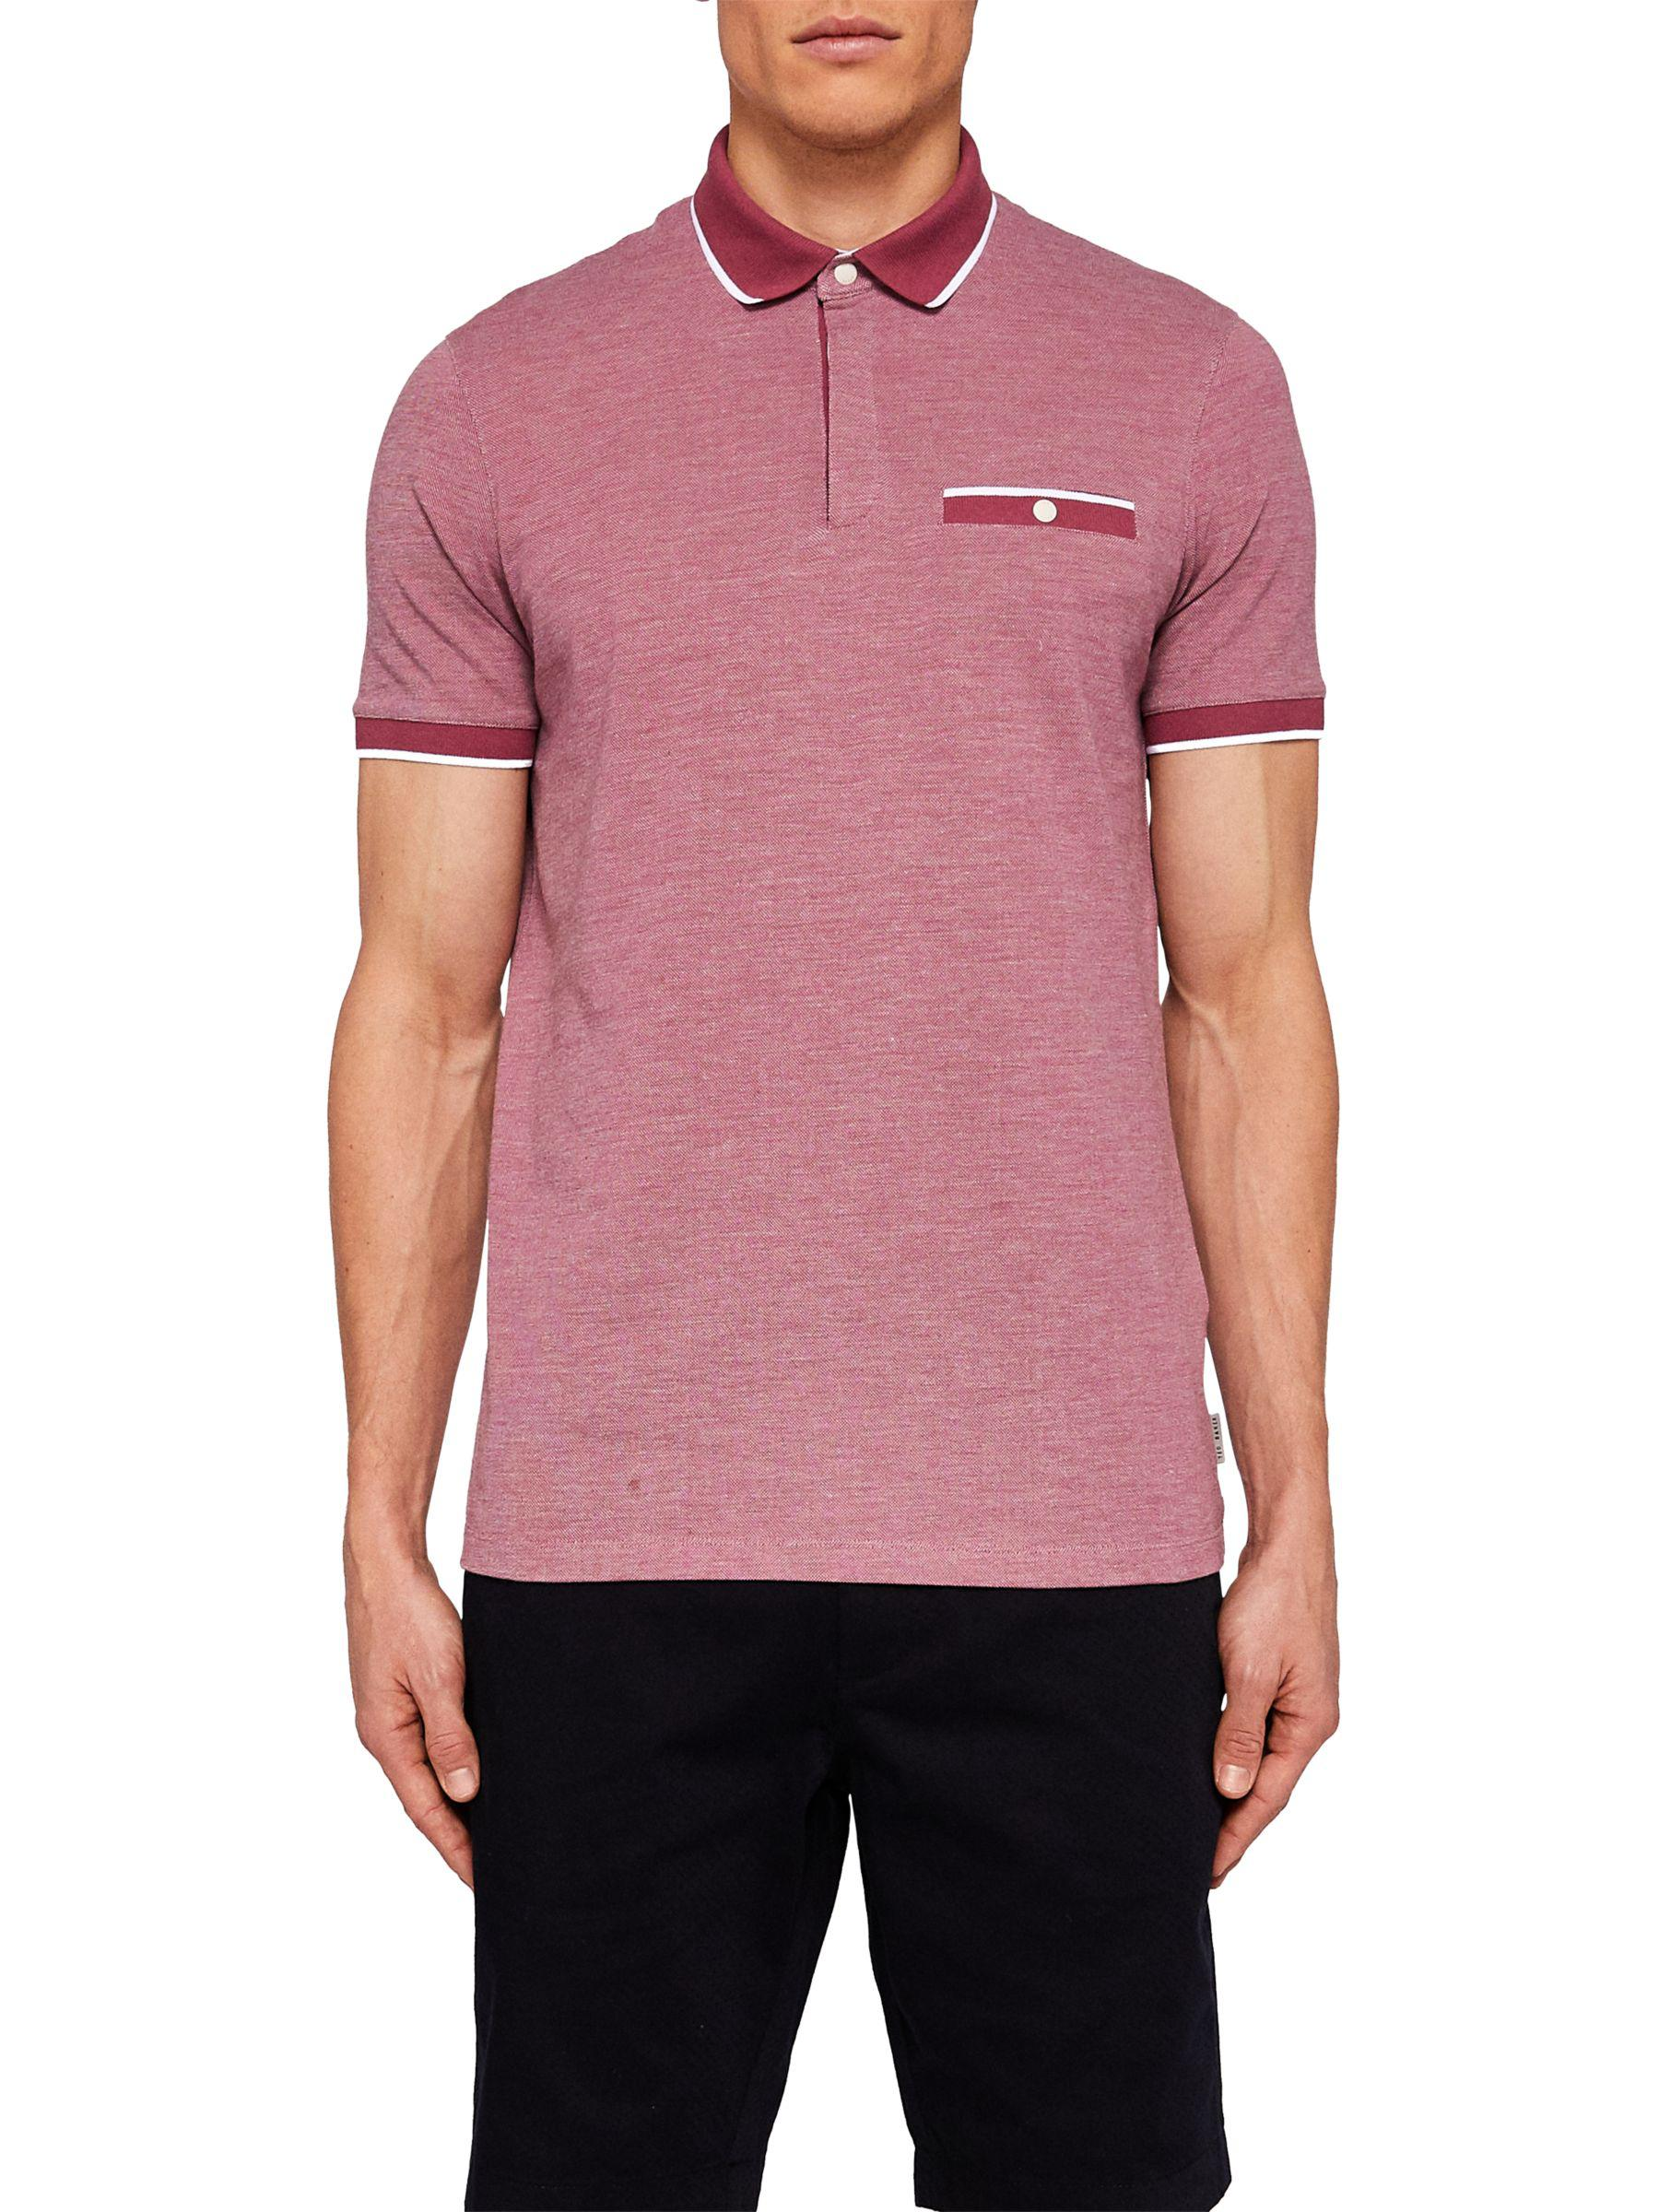 6bf432b5 Ted Baker Depot Short Sleeve Polo Shirt in Pink for Men - Lyst